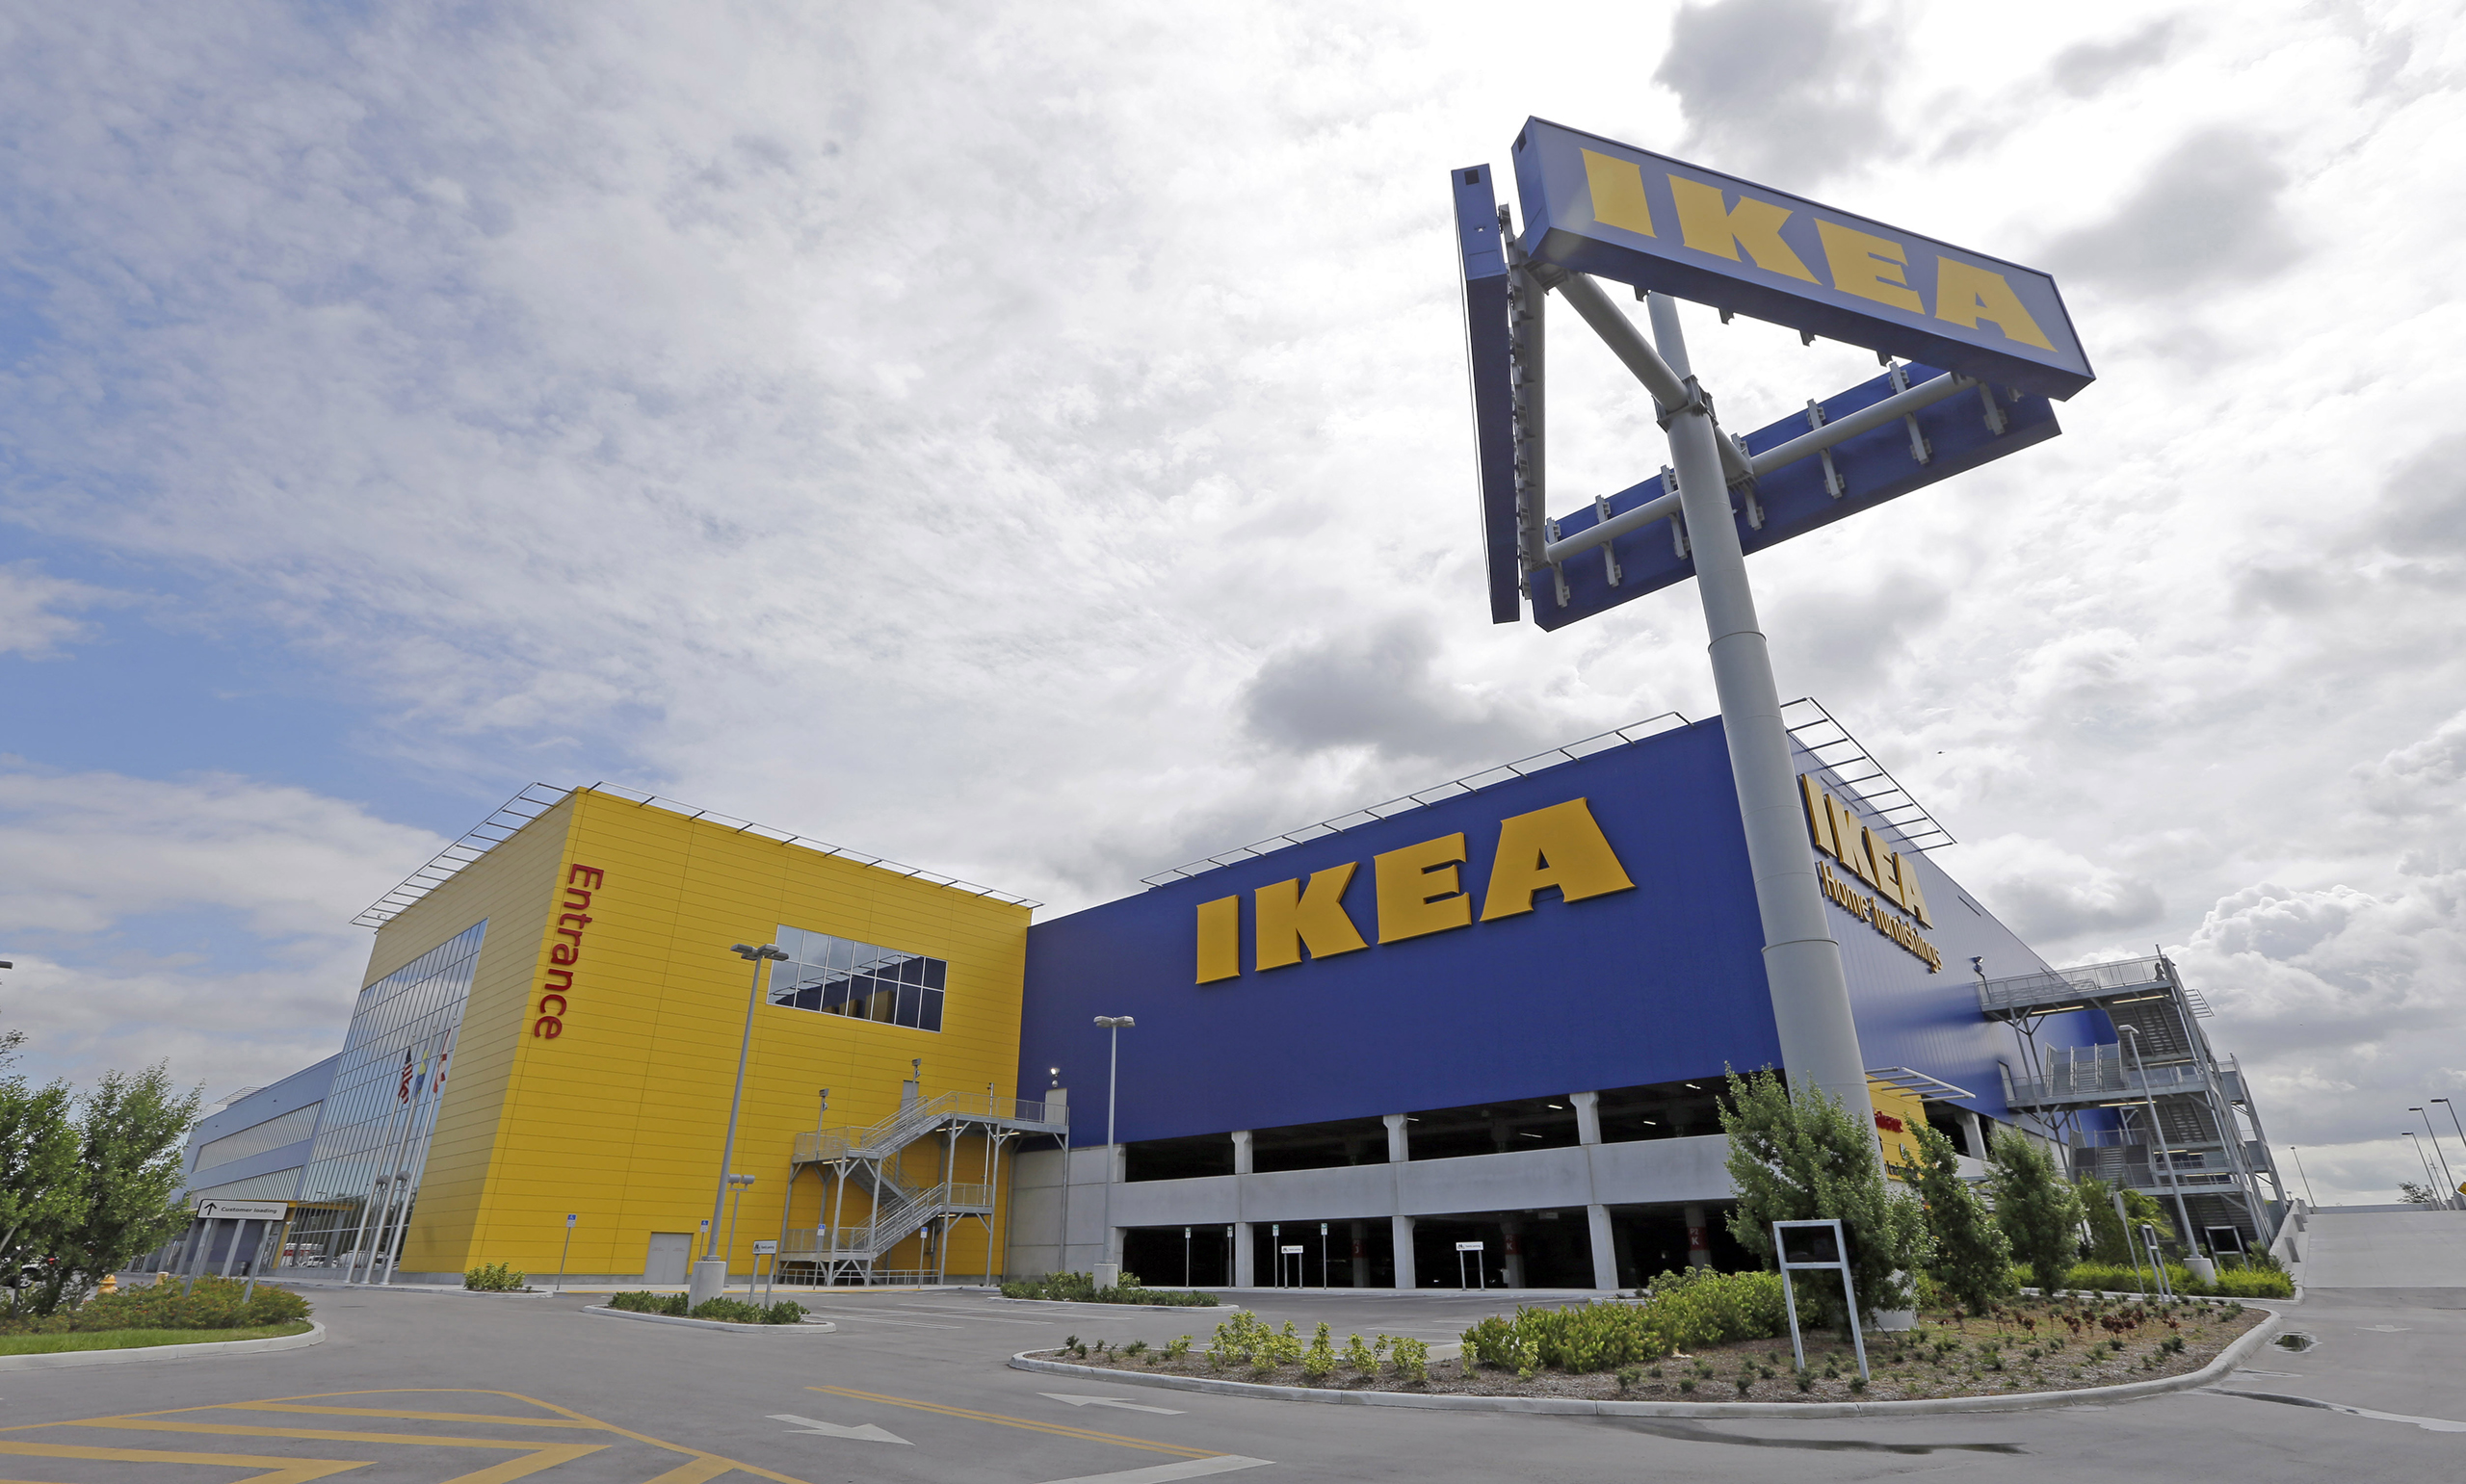 An IKEA store in Miami on June 3, 2015.